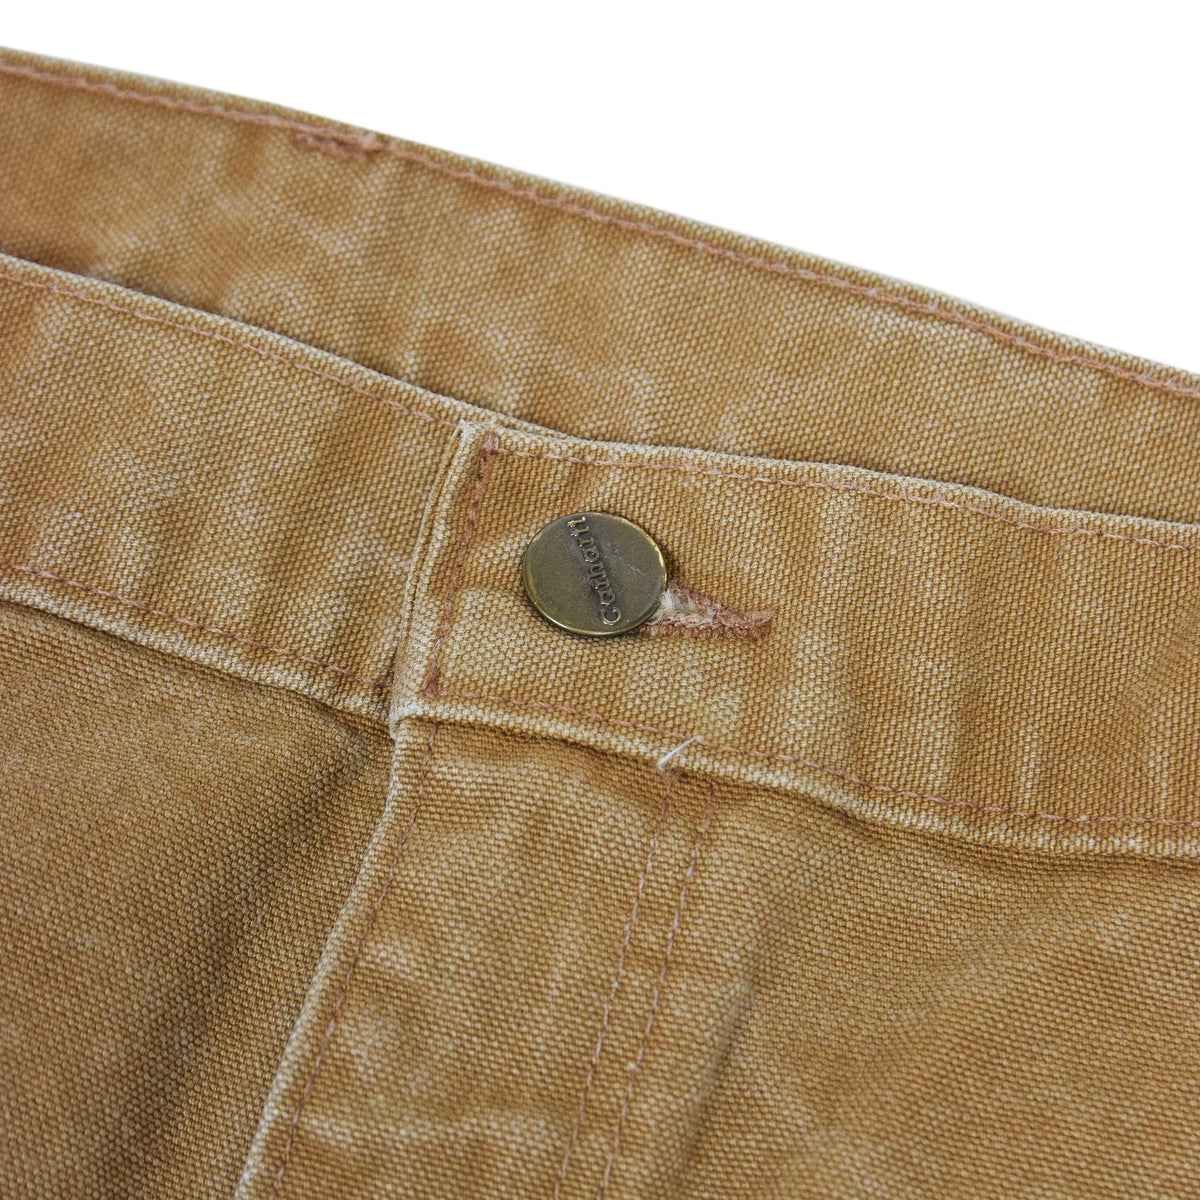 Vintage Carhartt Tan Brown Duck Canvas Utility Work Pant Dungaree Fit 38 W 32 L button